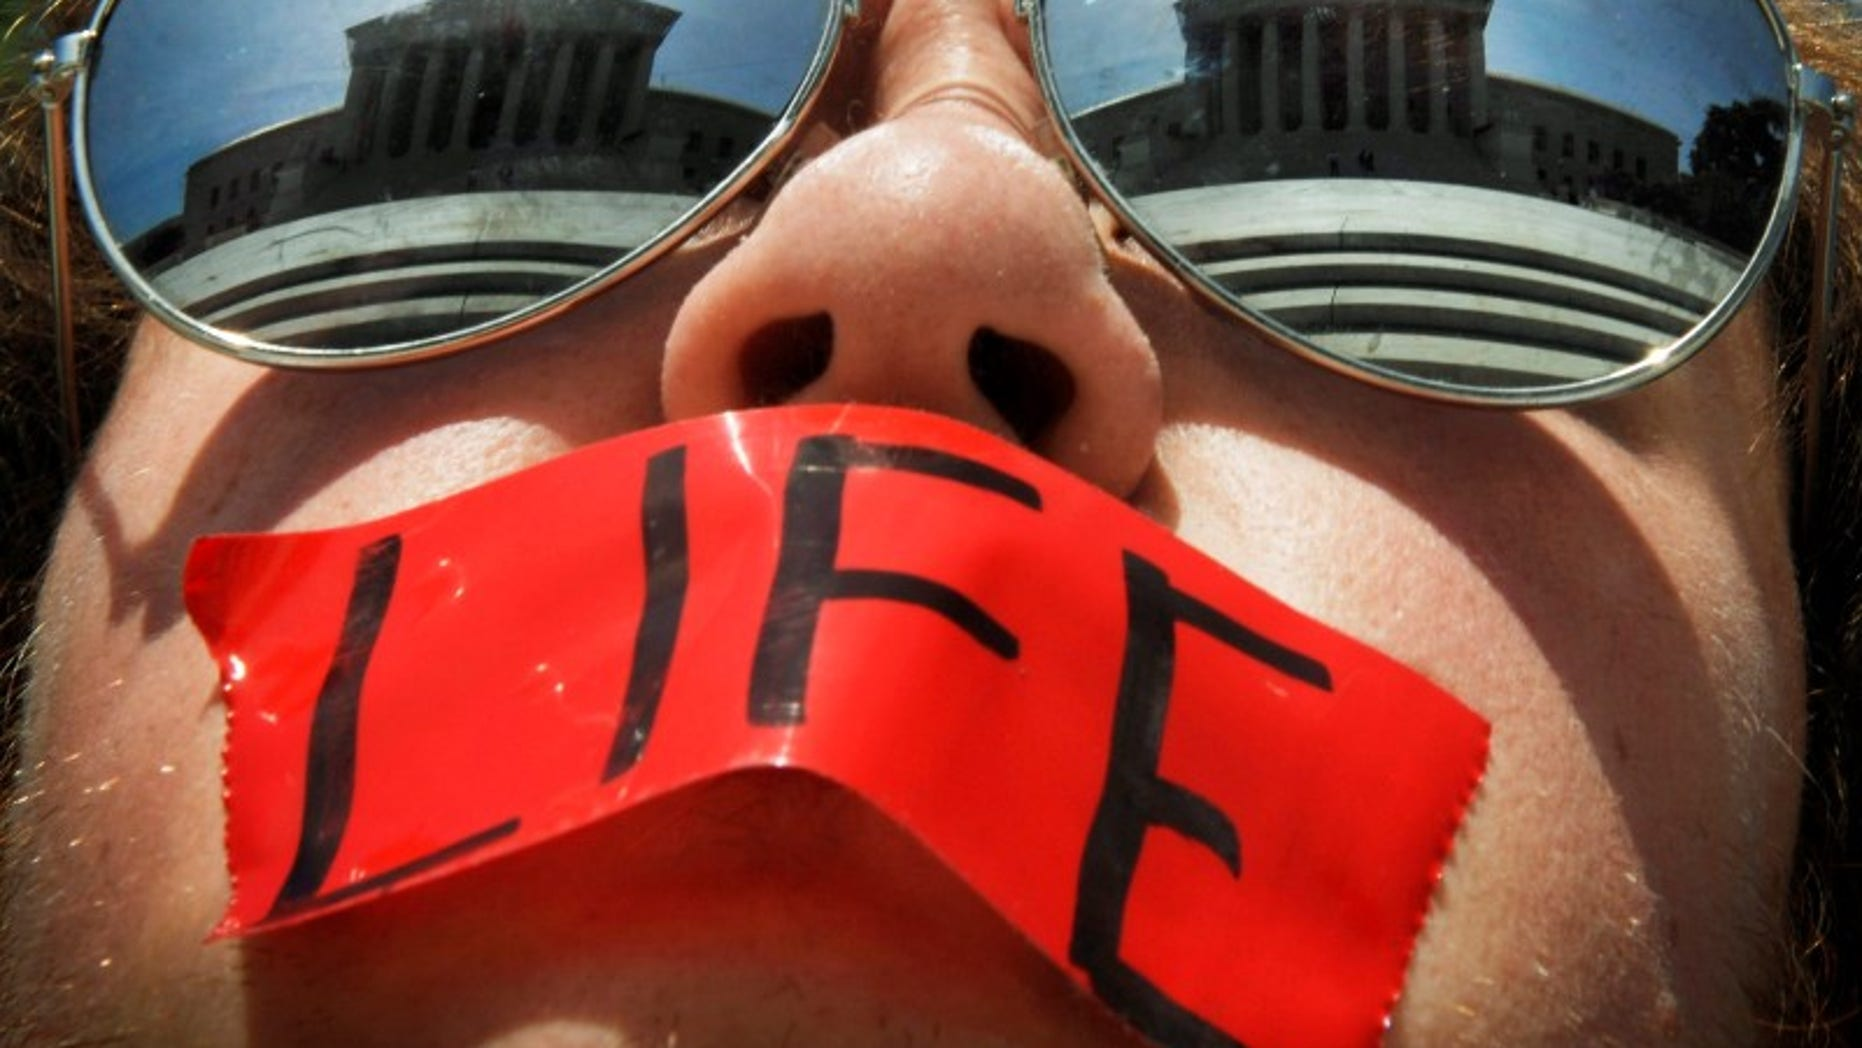 Anti-abortion activist Craig Kuhns wears mirrored sunglasses and a piece of tape over his mouth as he stands in front of the US Supreme Court building in Washington, in this June 1, 2009 file photo.REUTERS/Jonathan Ernst/Files